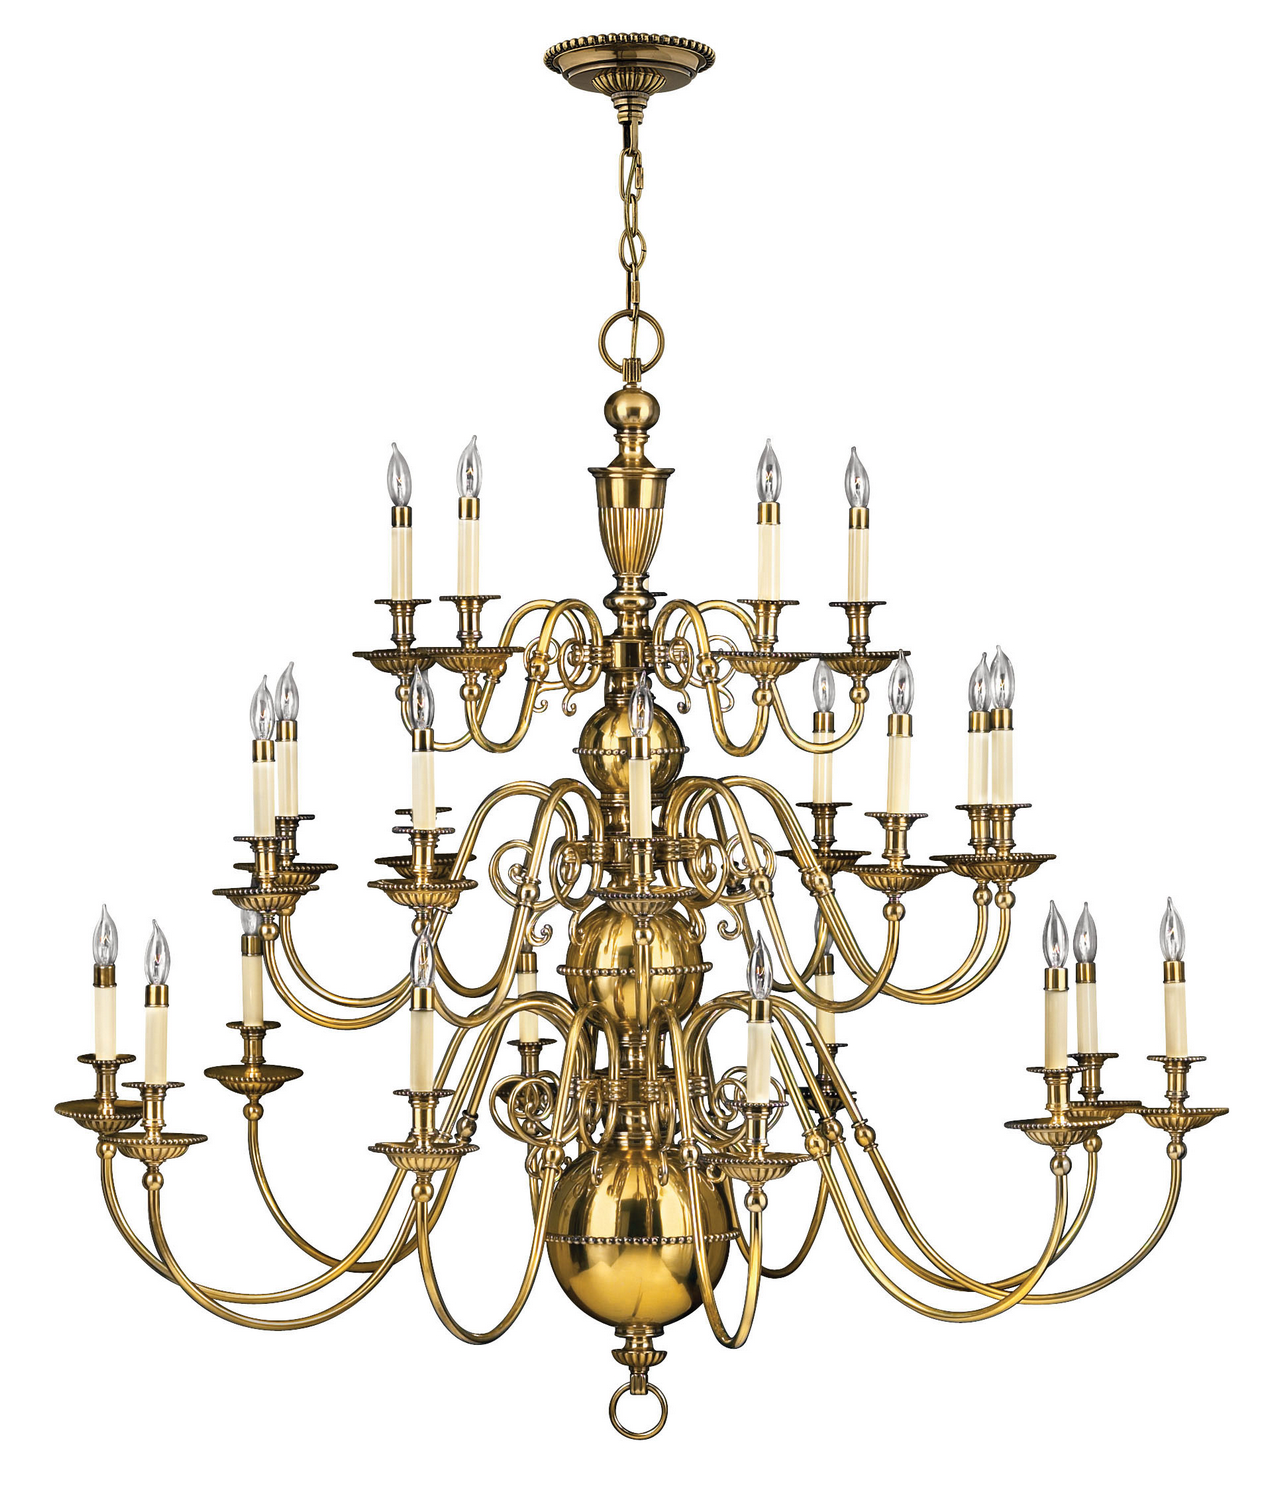 25 Light Foyer Pendant from the Cambridge collection by Hinkley 4419BB